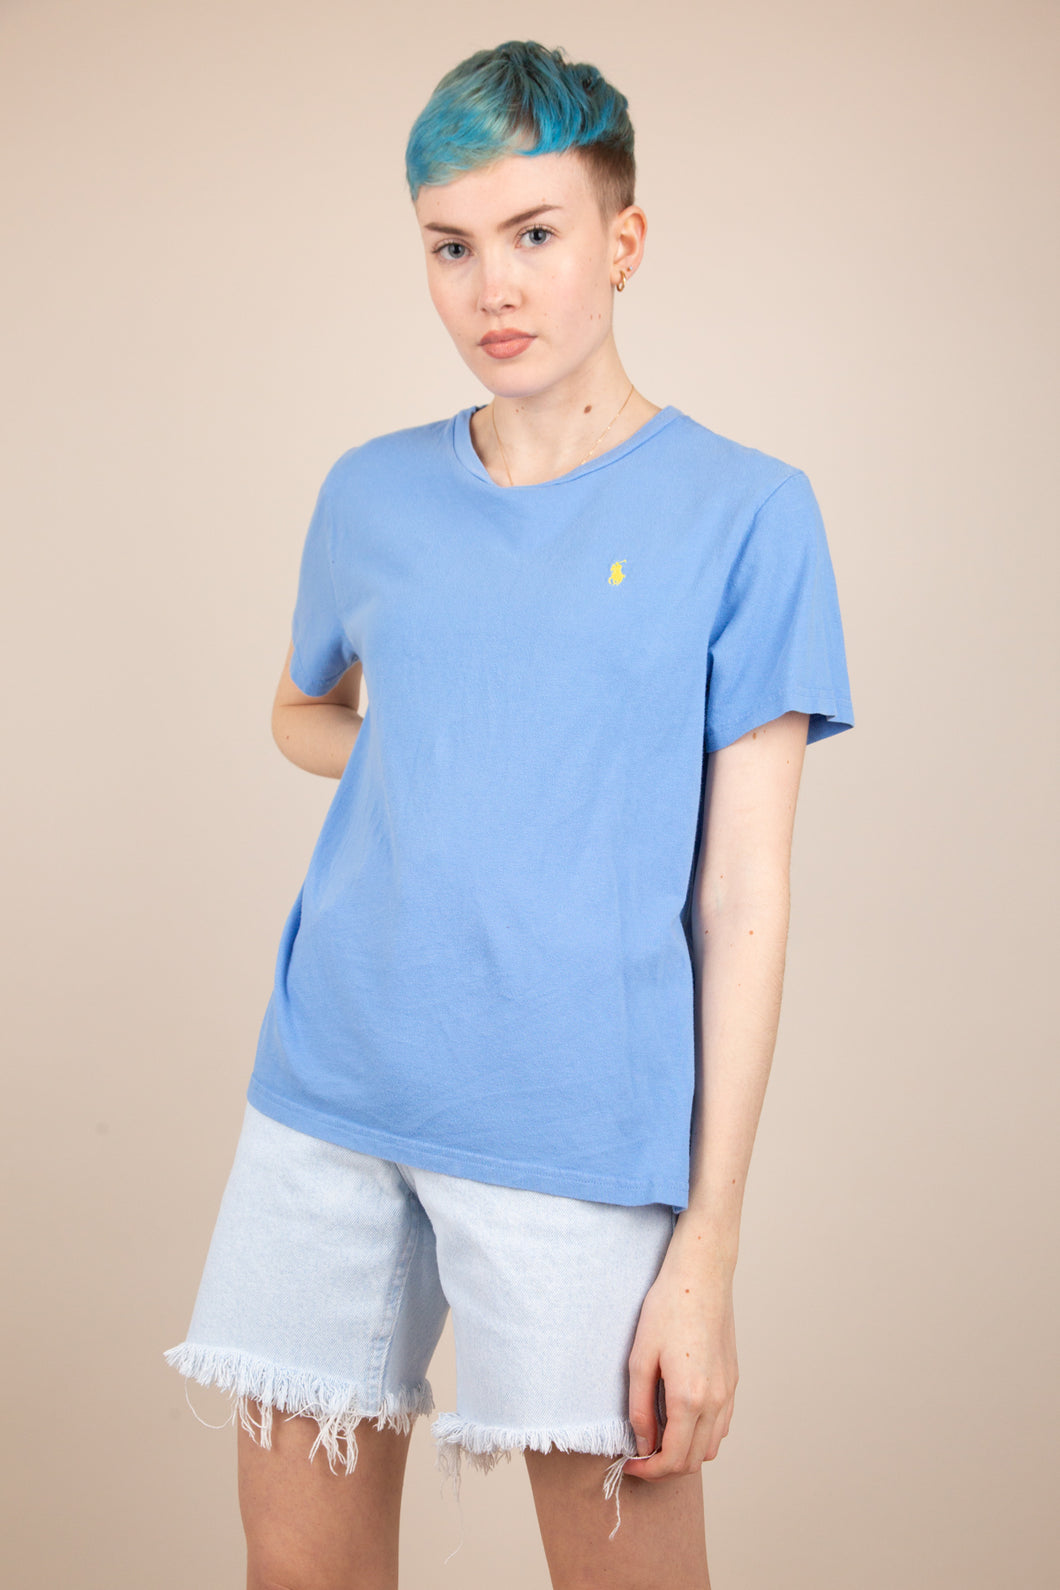 periwinkle blue ralph lauren tee with yellow embroidered logo on left chest